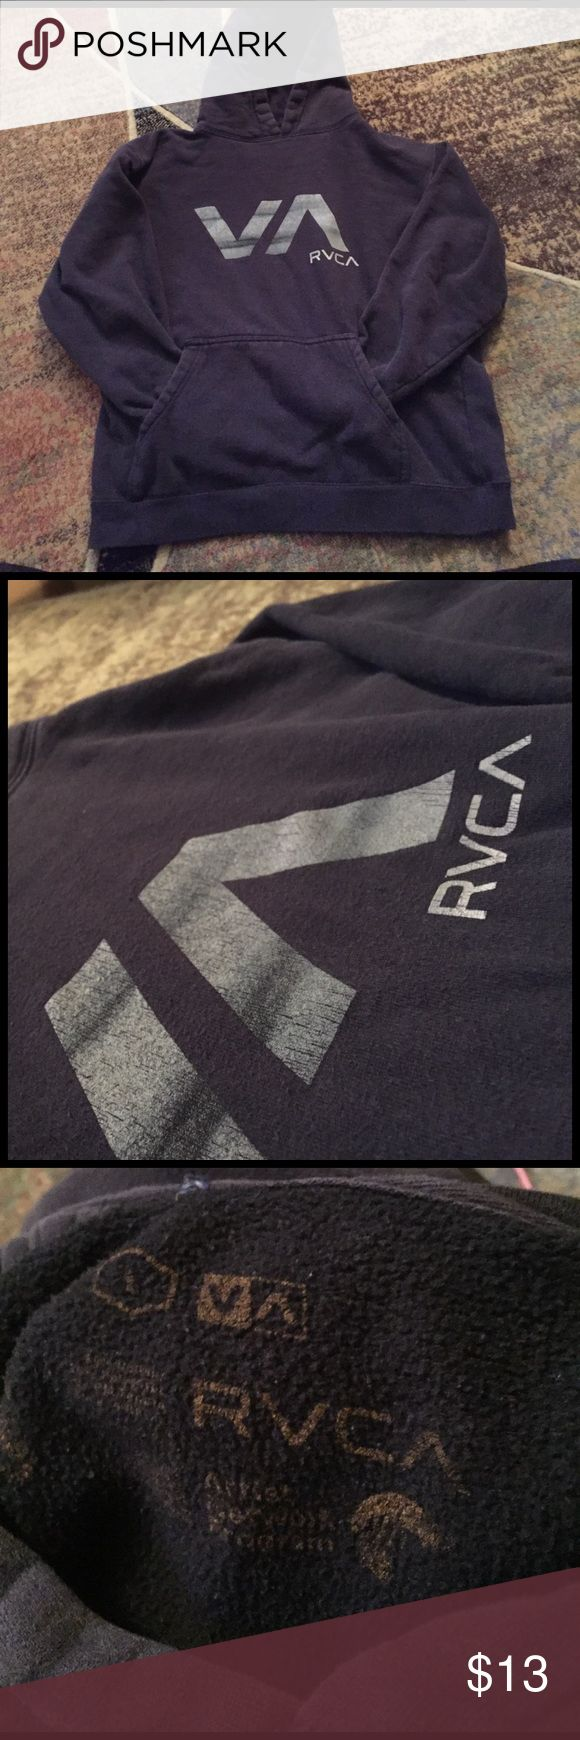 RVCA Hoodie 👚 My boyfriend had bought this for himself but didn't realize it was juniors so he passed it down to me that day lol it says large but it definitely fits a size small! 🙈 the lettering is a smidge cracked but wash it inside out and it should be just fine!😍 RVCA Sweaters Crew & Scoop Necks